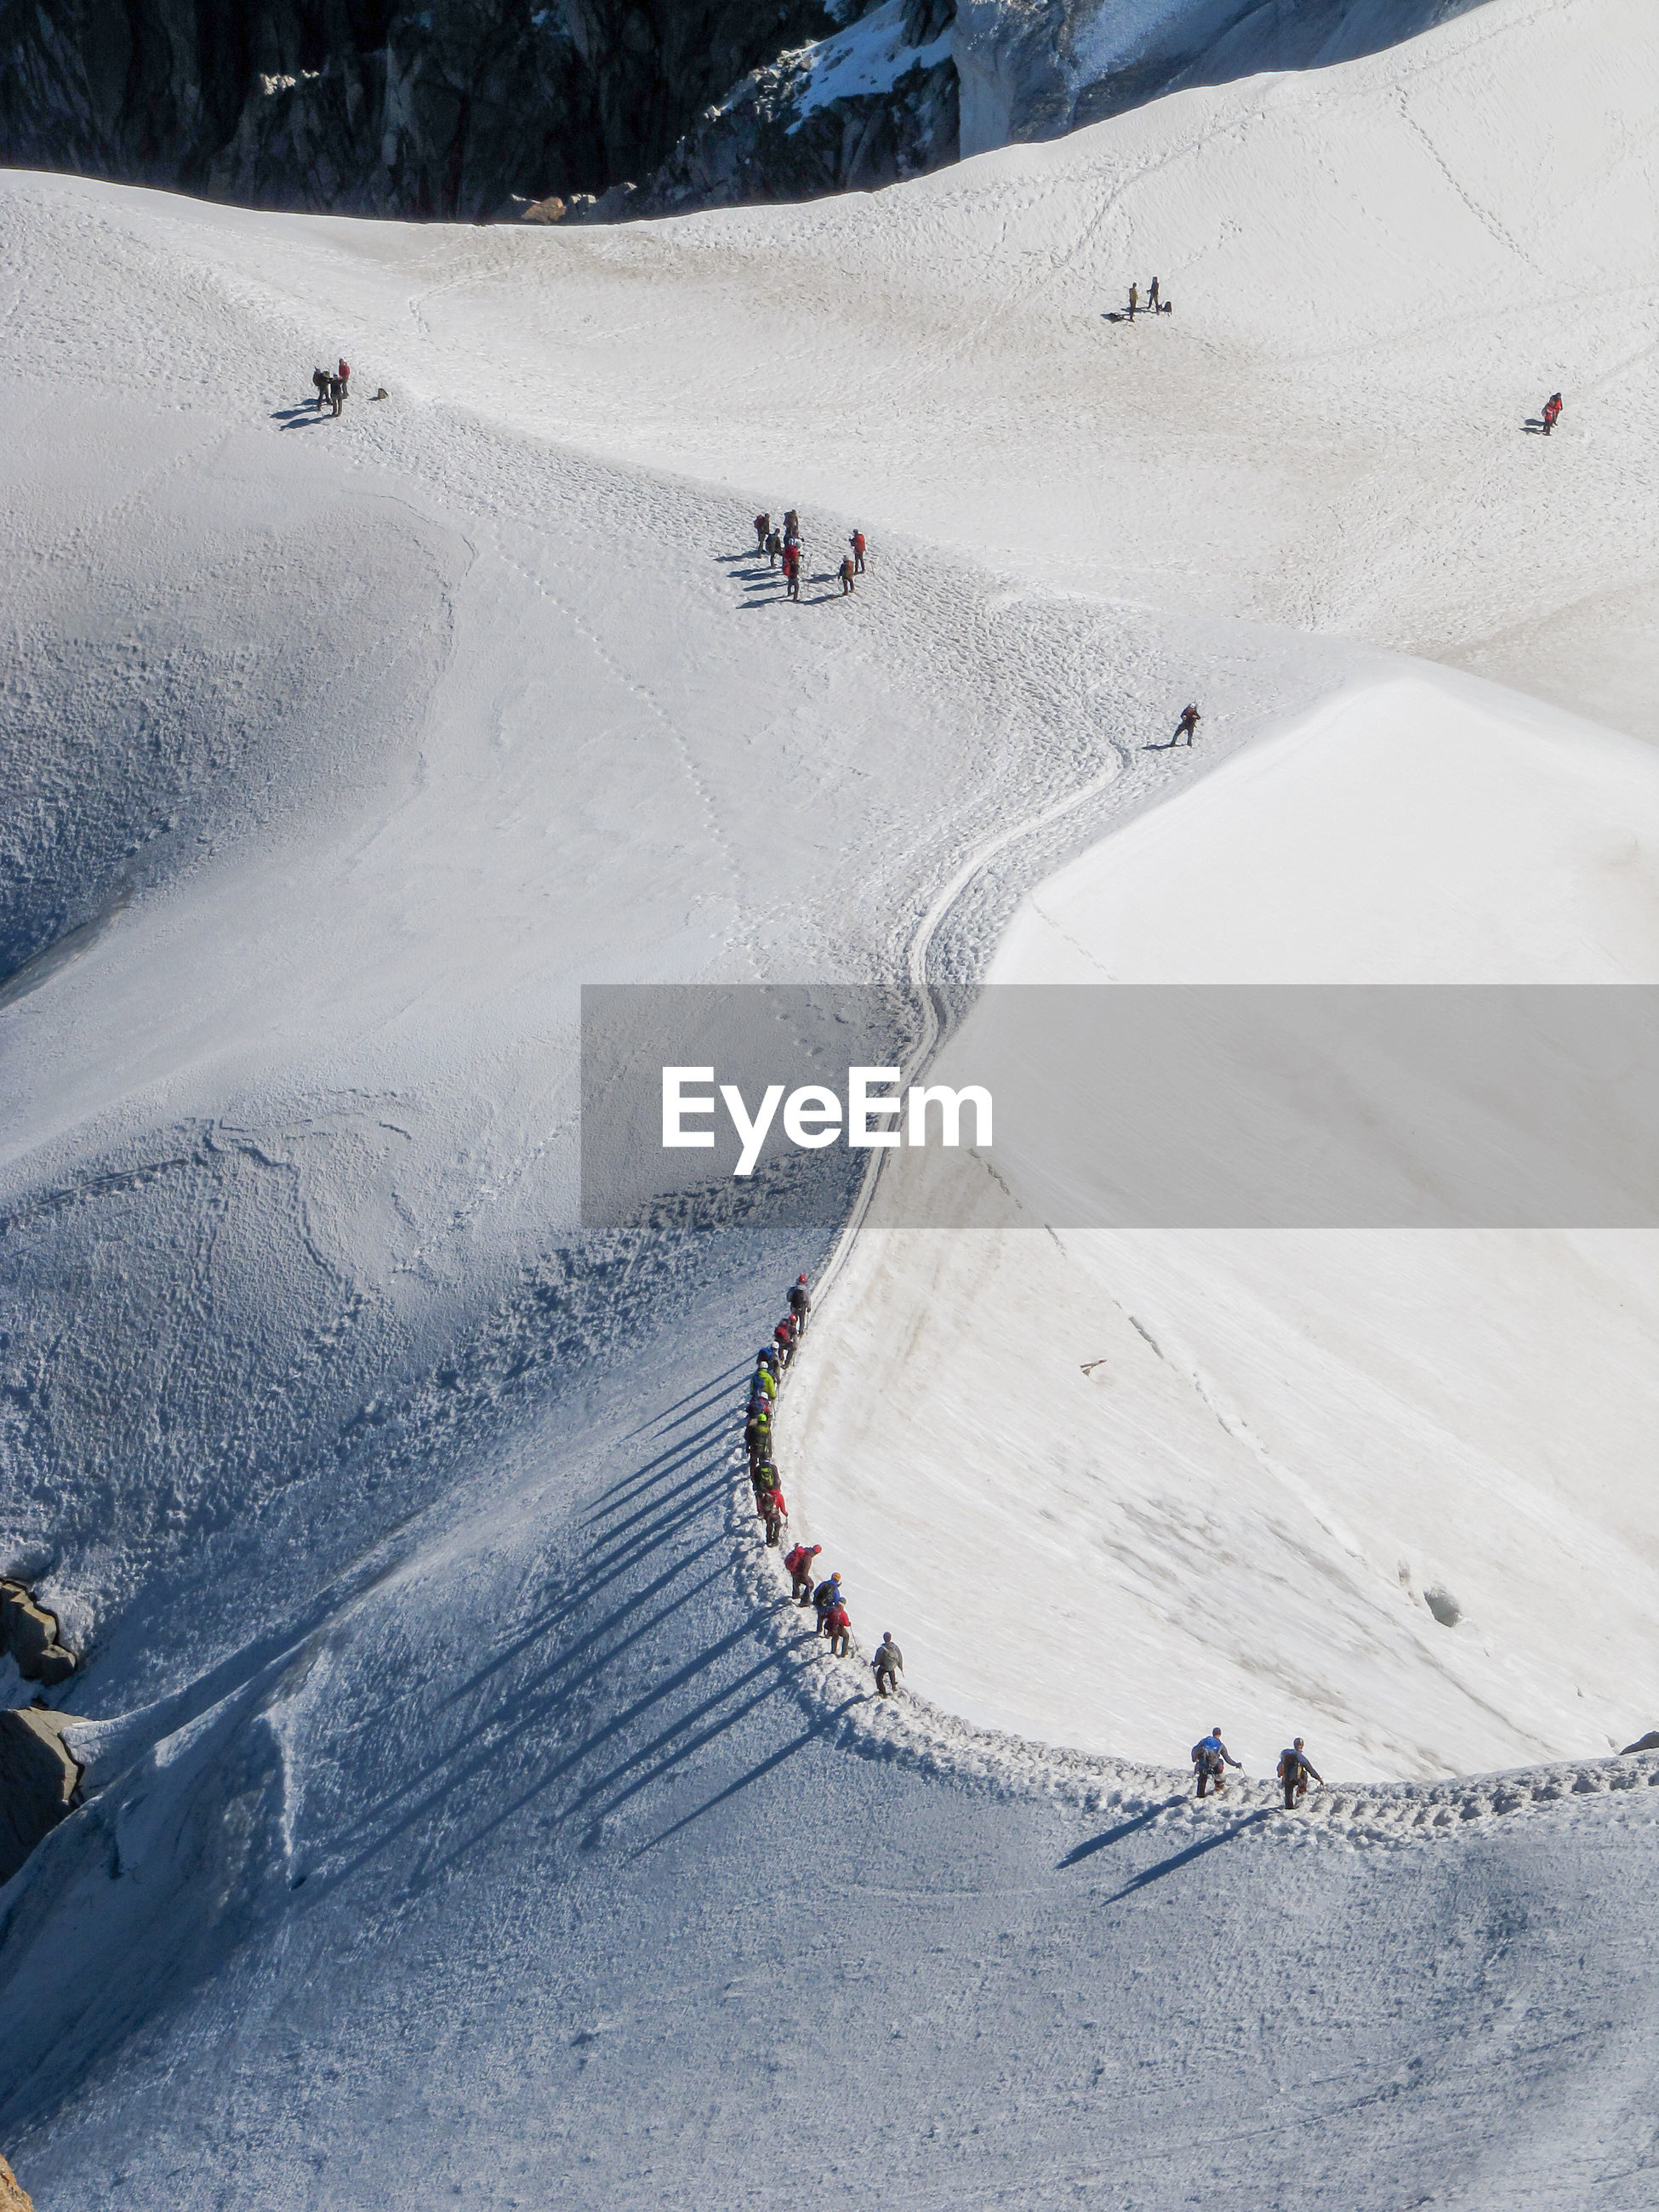 People skiing on snow covered landscape against cloudy sky